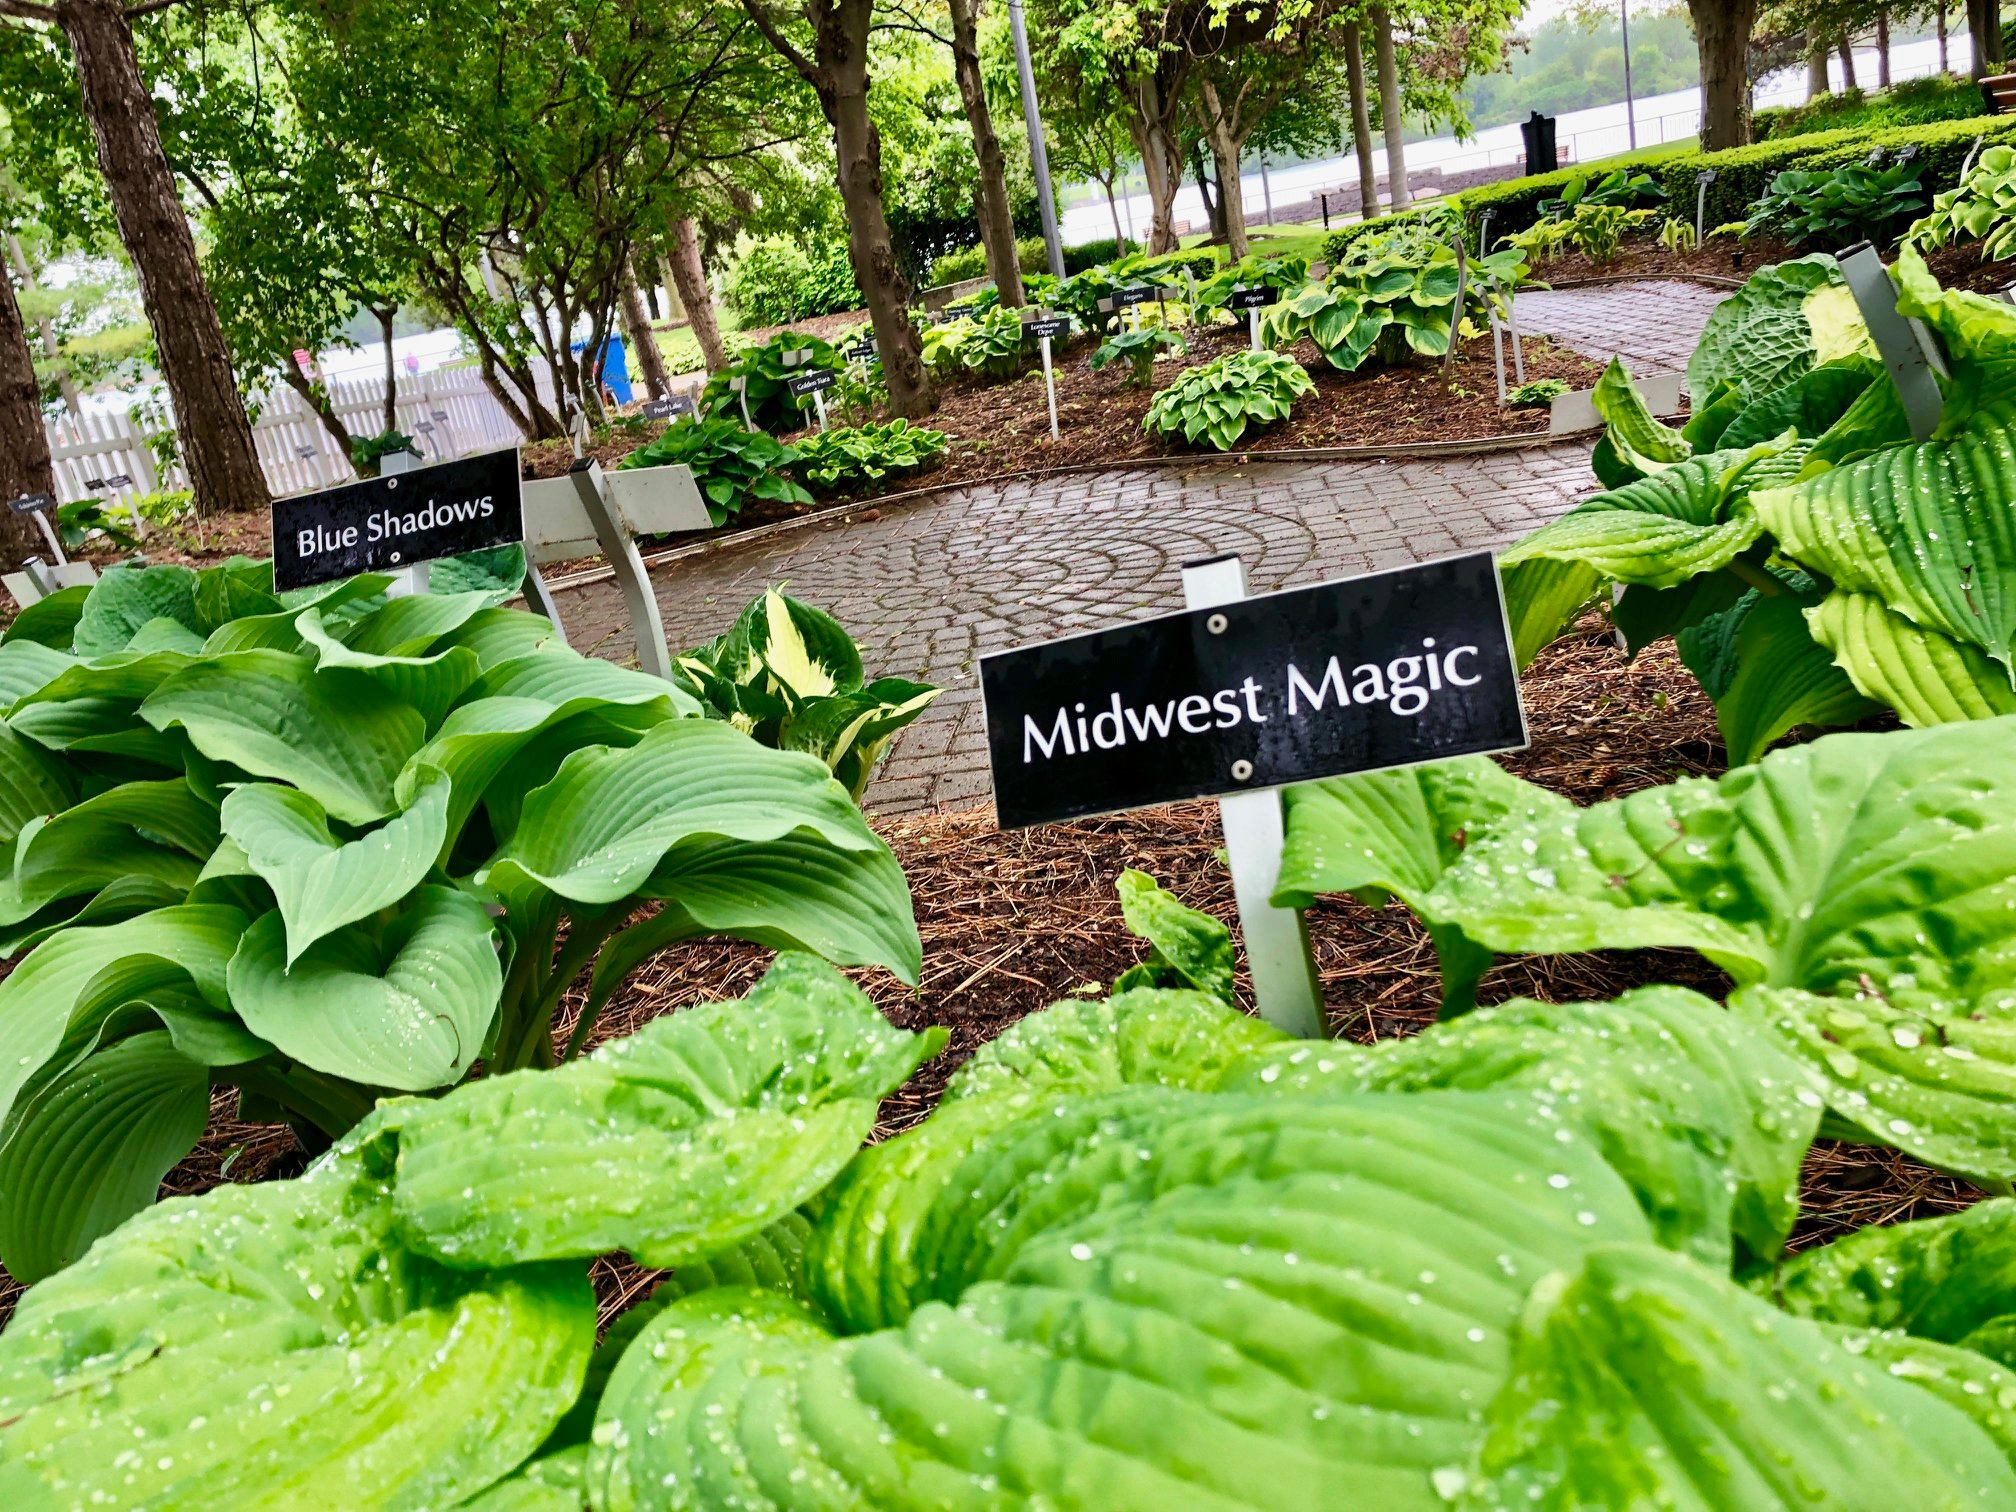 The Hosta Garden at King's Navy Yard Park